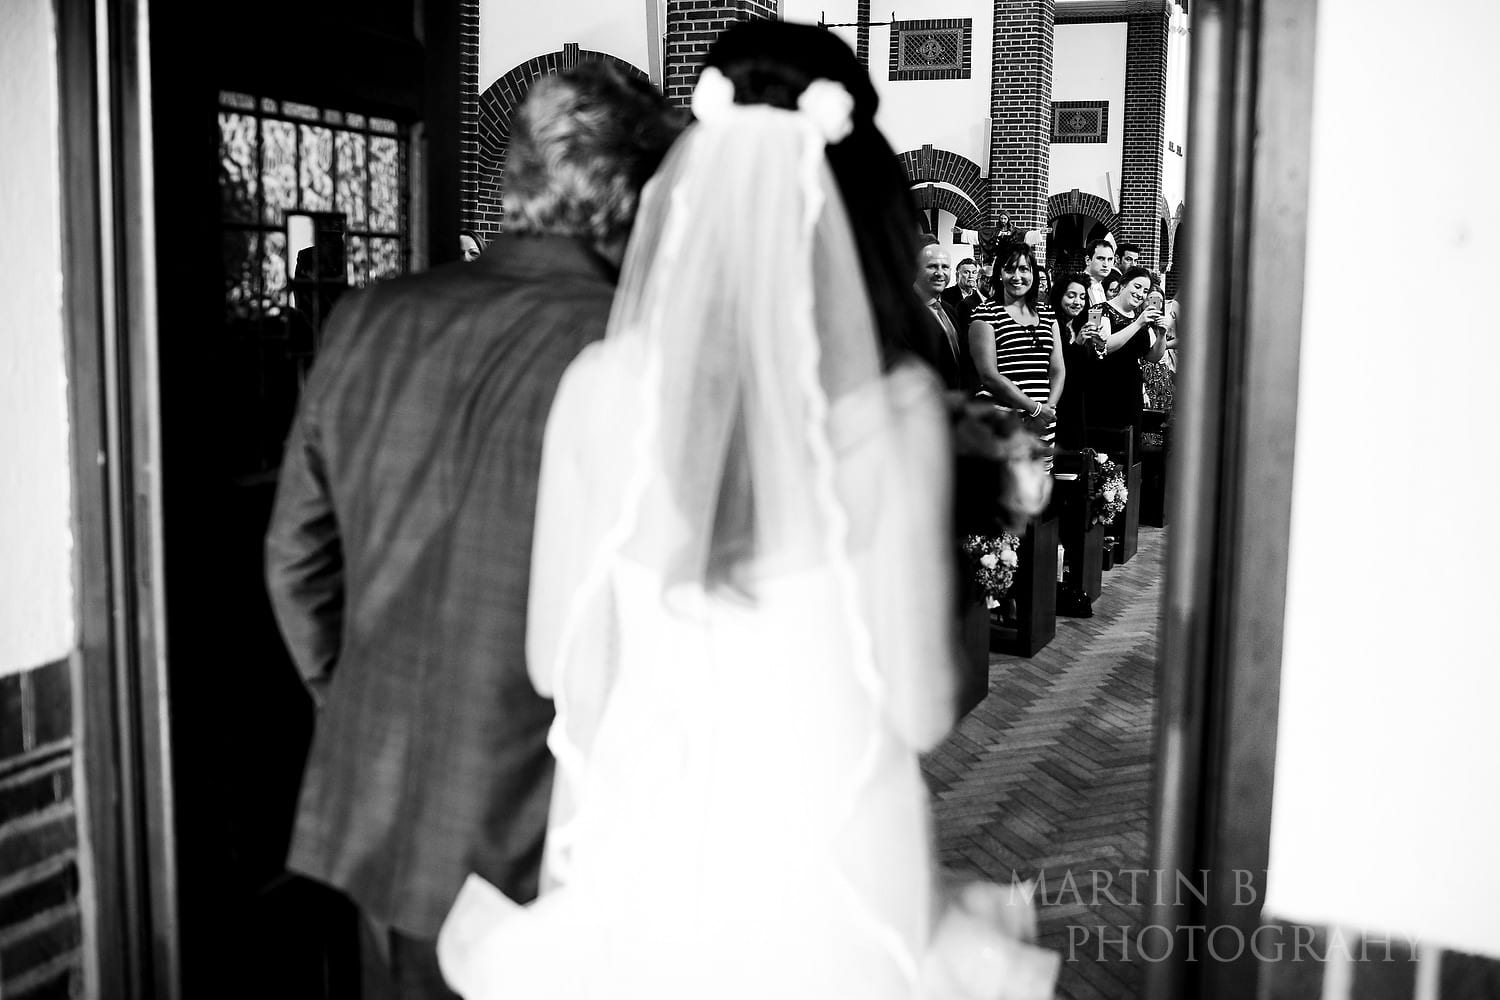 Guests look on as the bride enters the church